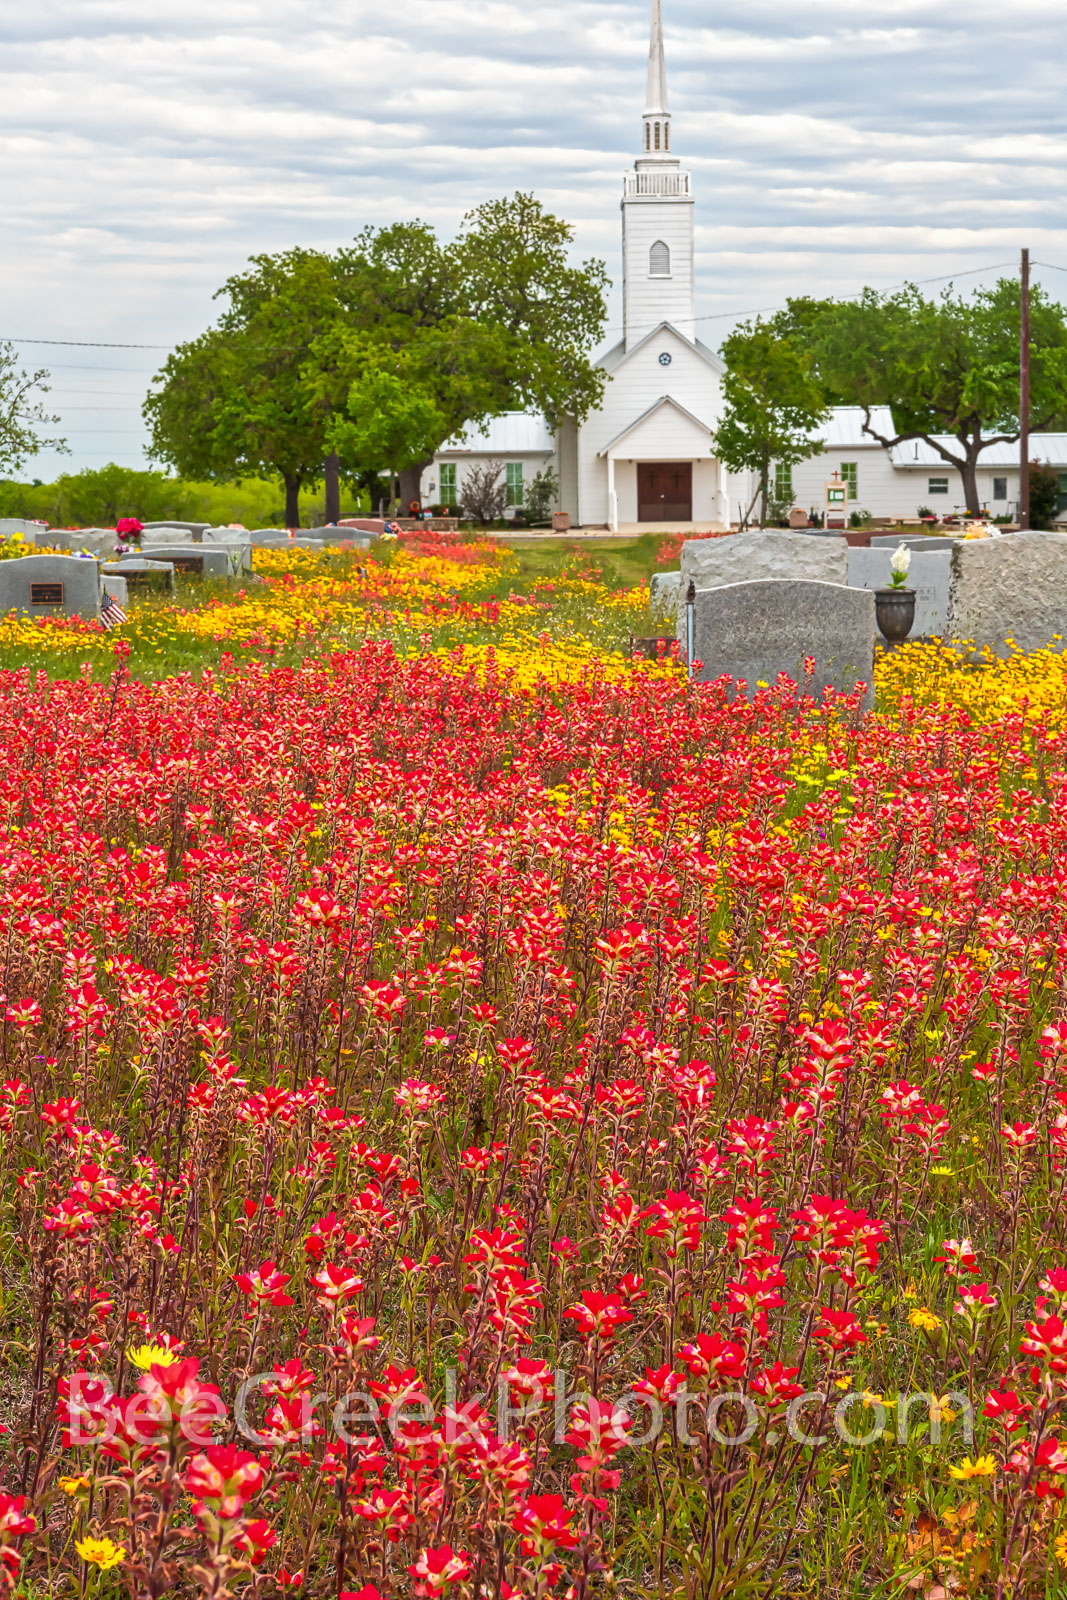 wildflowers, texas wildflowers, bluebonnets, indian paintbrush, yellow coreopsis, texas, central texas, south texas, floral, flowers, plants, colorful wildflowers, backroads, vibrant, colors, reds, ye, photo